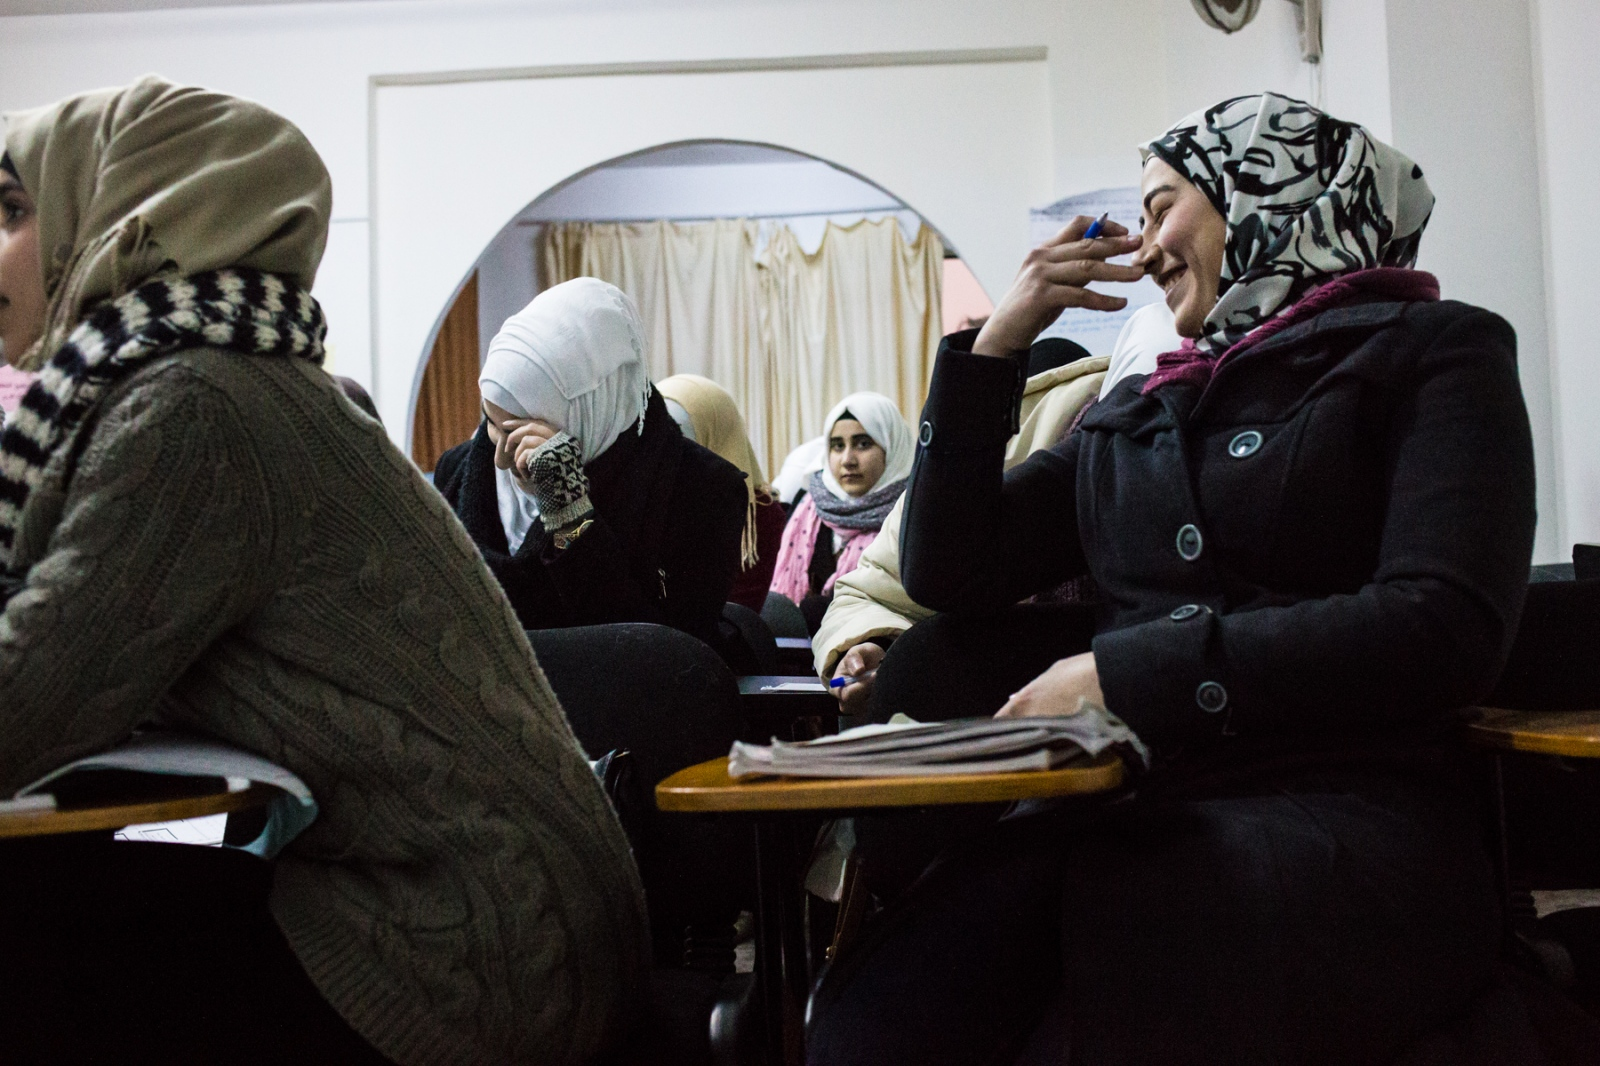 Young Syrian women attend classes at Suriyat Without Borders, a local NGO in Amman, Jordan that provides free classes and medical care to help Syrian refugees in Jordan recover and move on in their lives there.